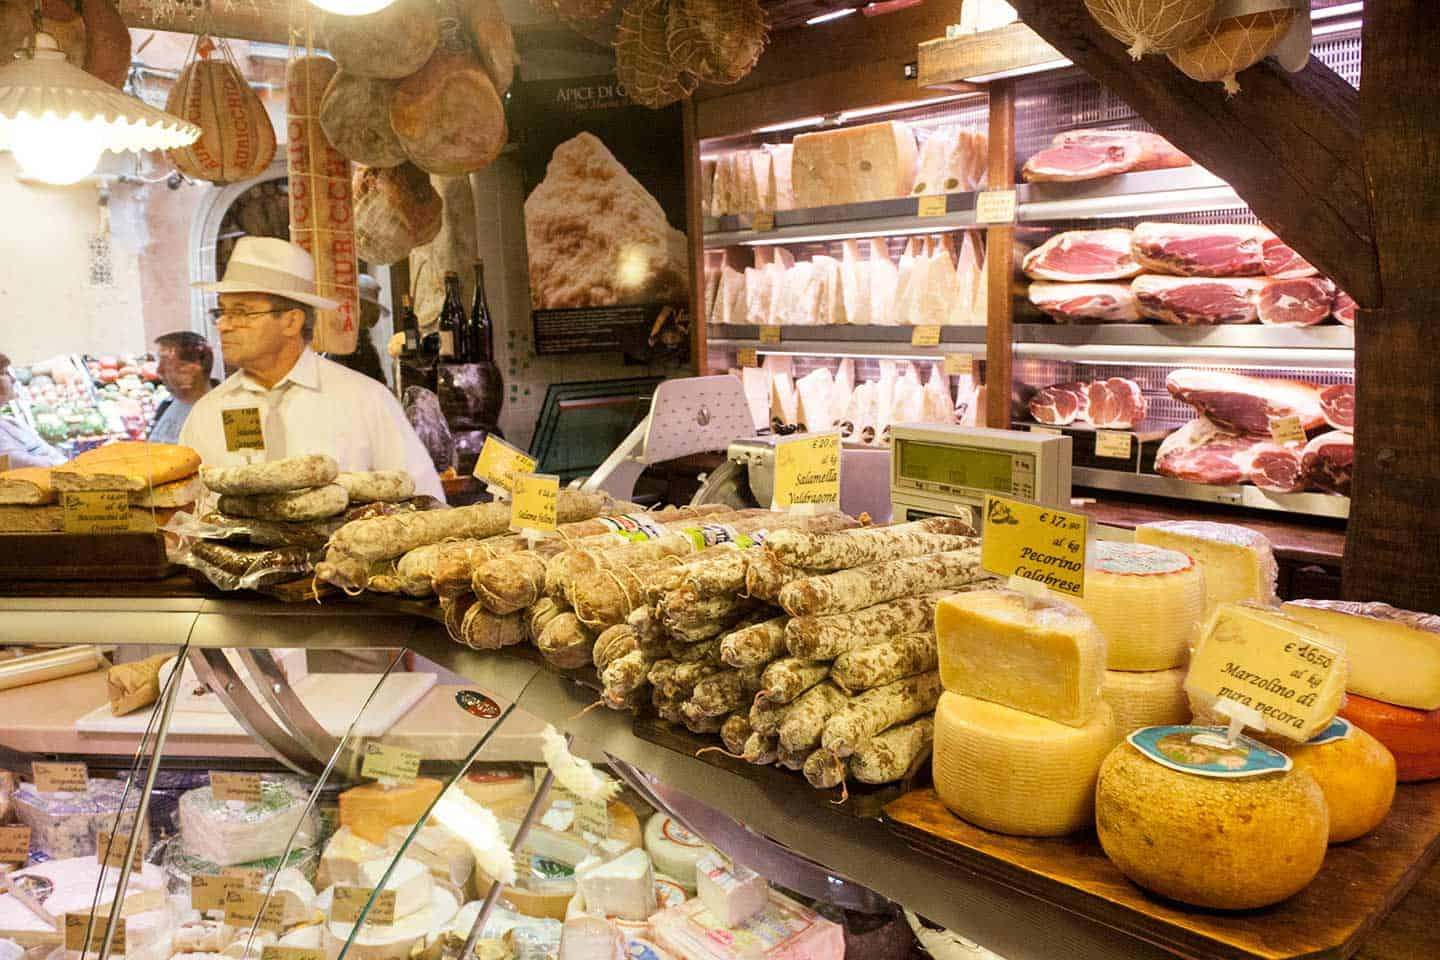 Image of a delicatessen in Bologna Italy